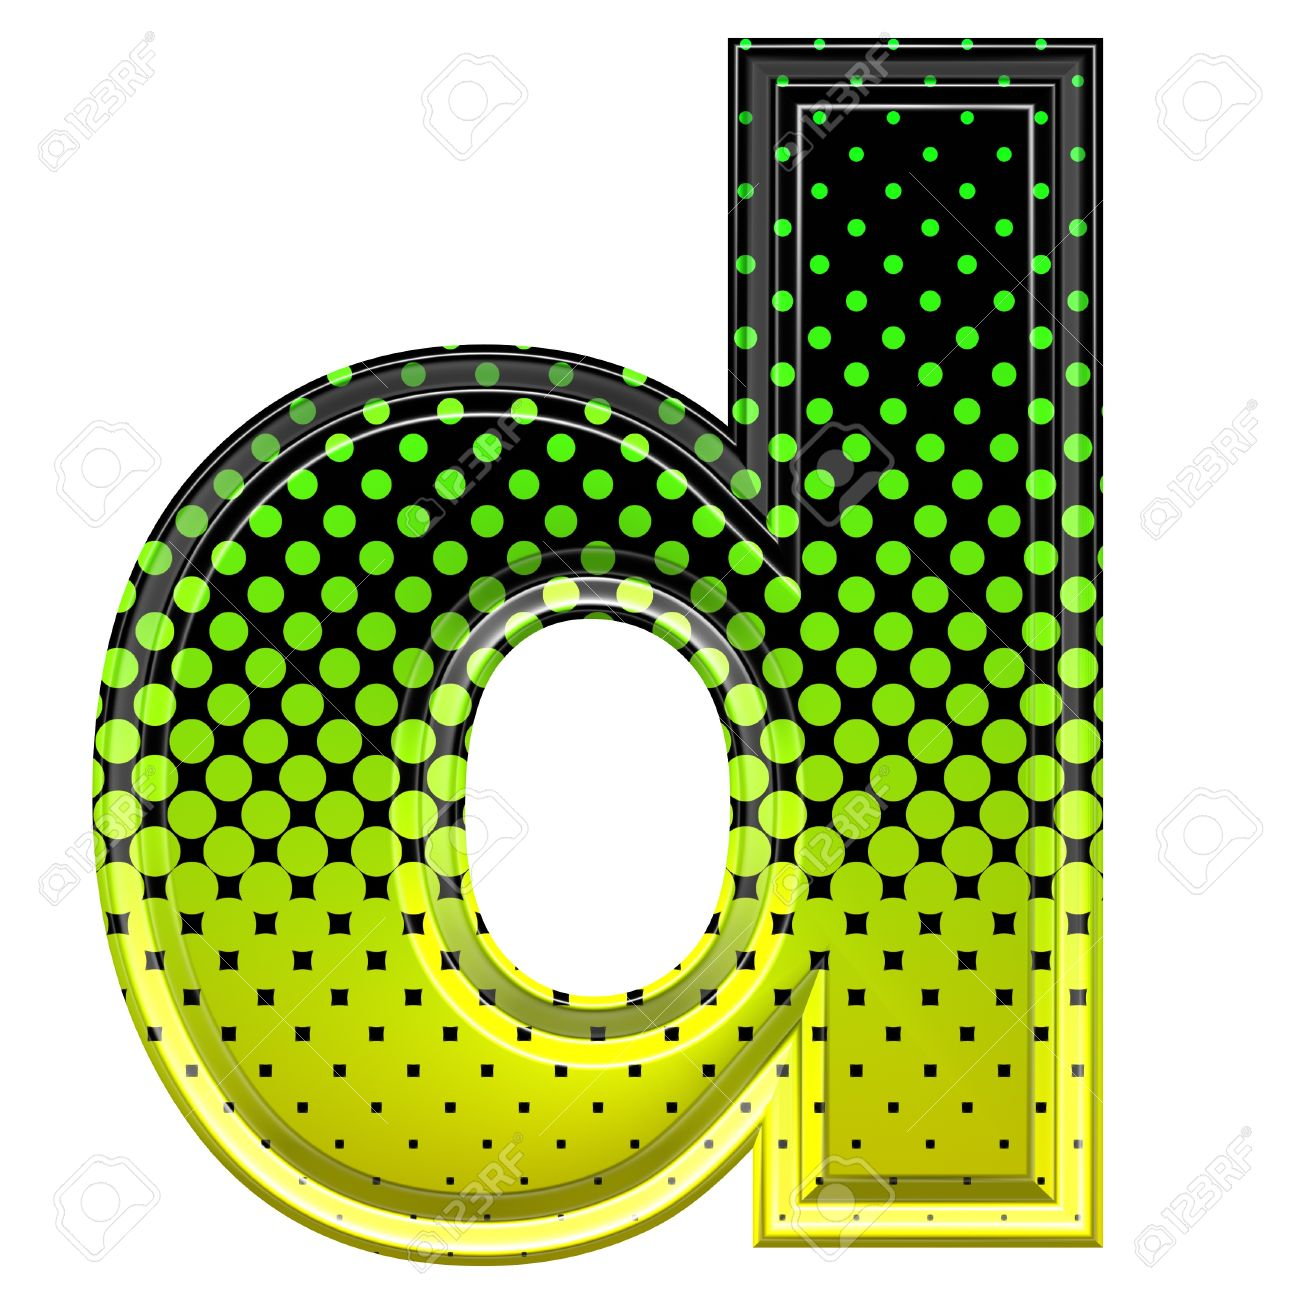 Lower case letter d clipart graphic free library Halftone 3d Lower-case Letter D Stock Photo, Picture And Royalty ... graphic free library